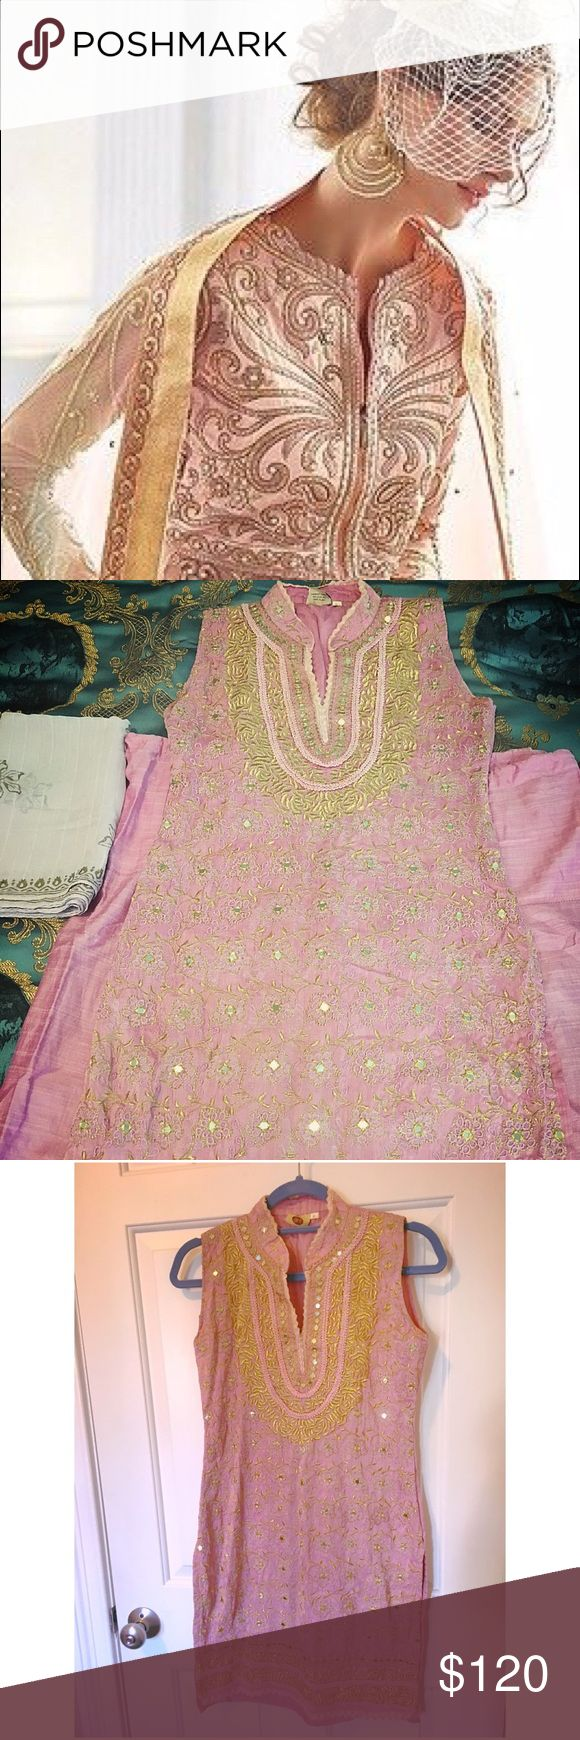 Indian/Pakistani dress Sari Lehenga Beautiful gold embroidery and mirror work motifs on pink silk dress. Bollywood style (pic 1 for reference) 3 piece set. Comes with matching pants and scarf. Ethnic wear. Fits Sz 2-4 Dresses